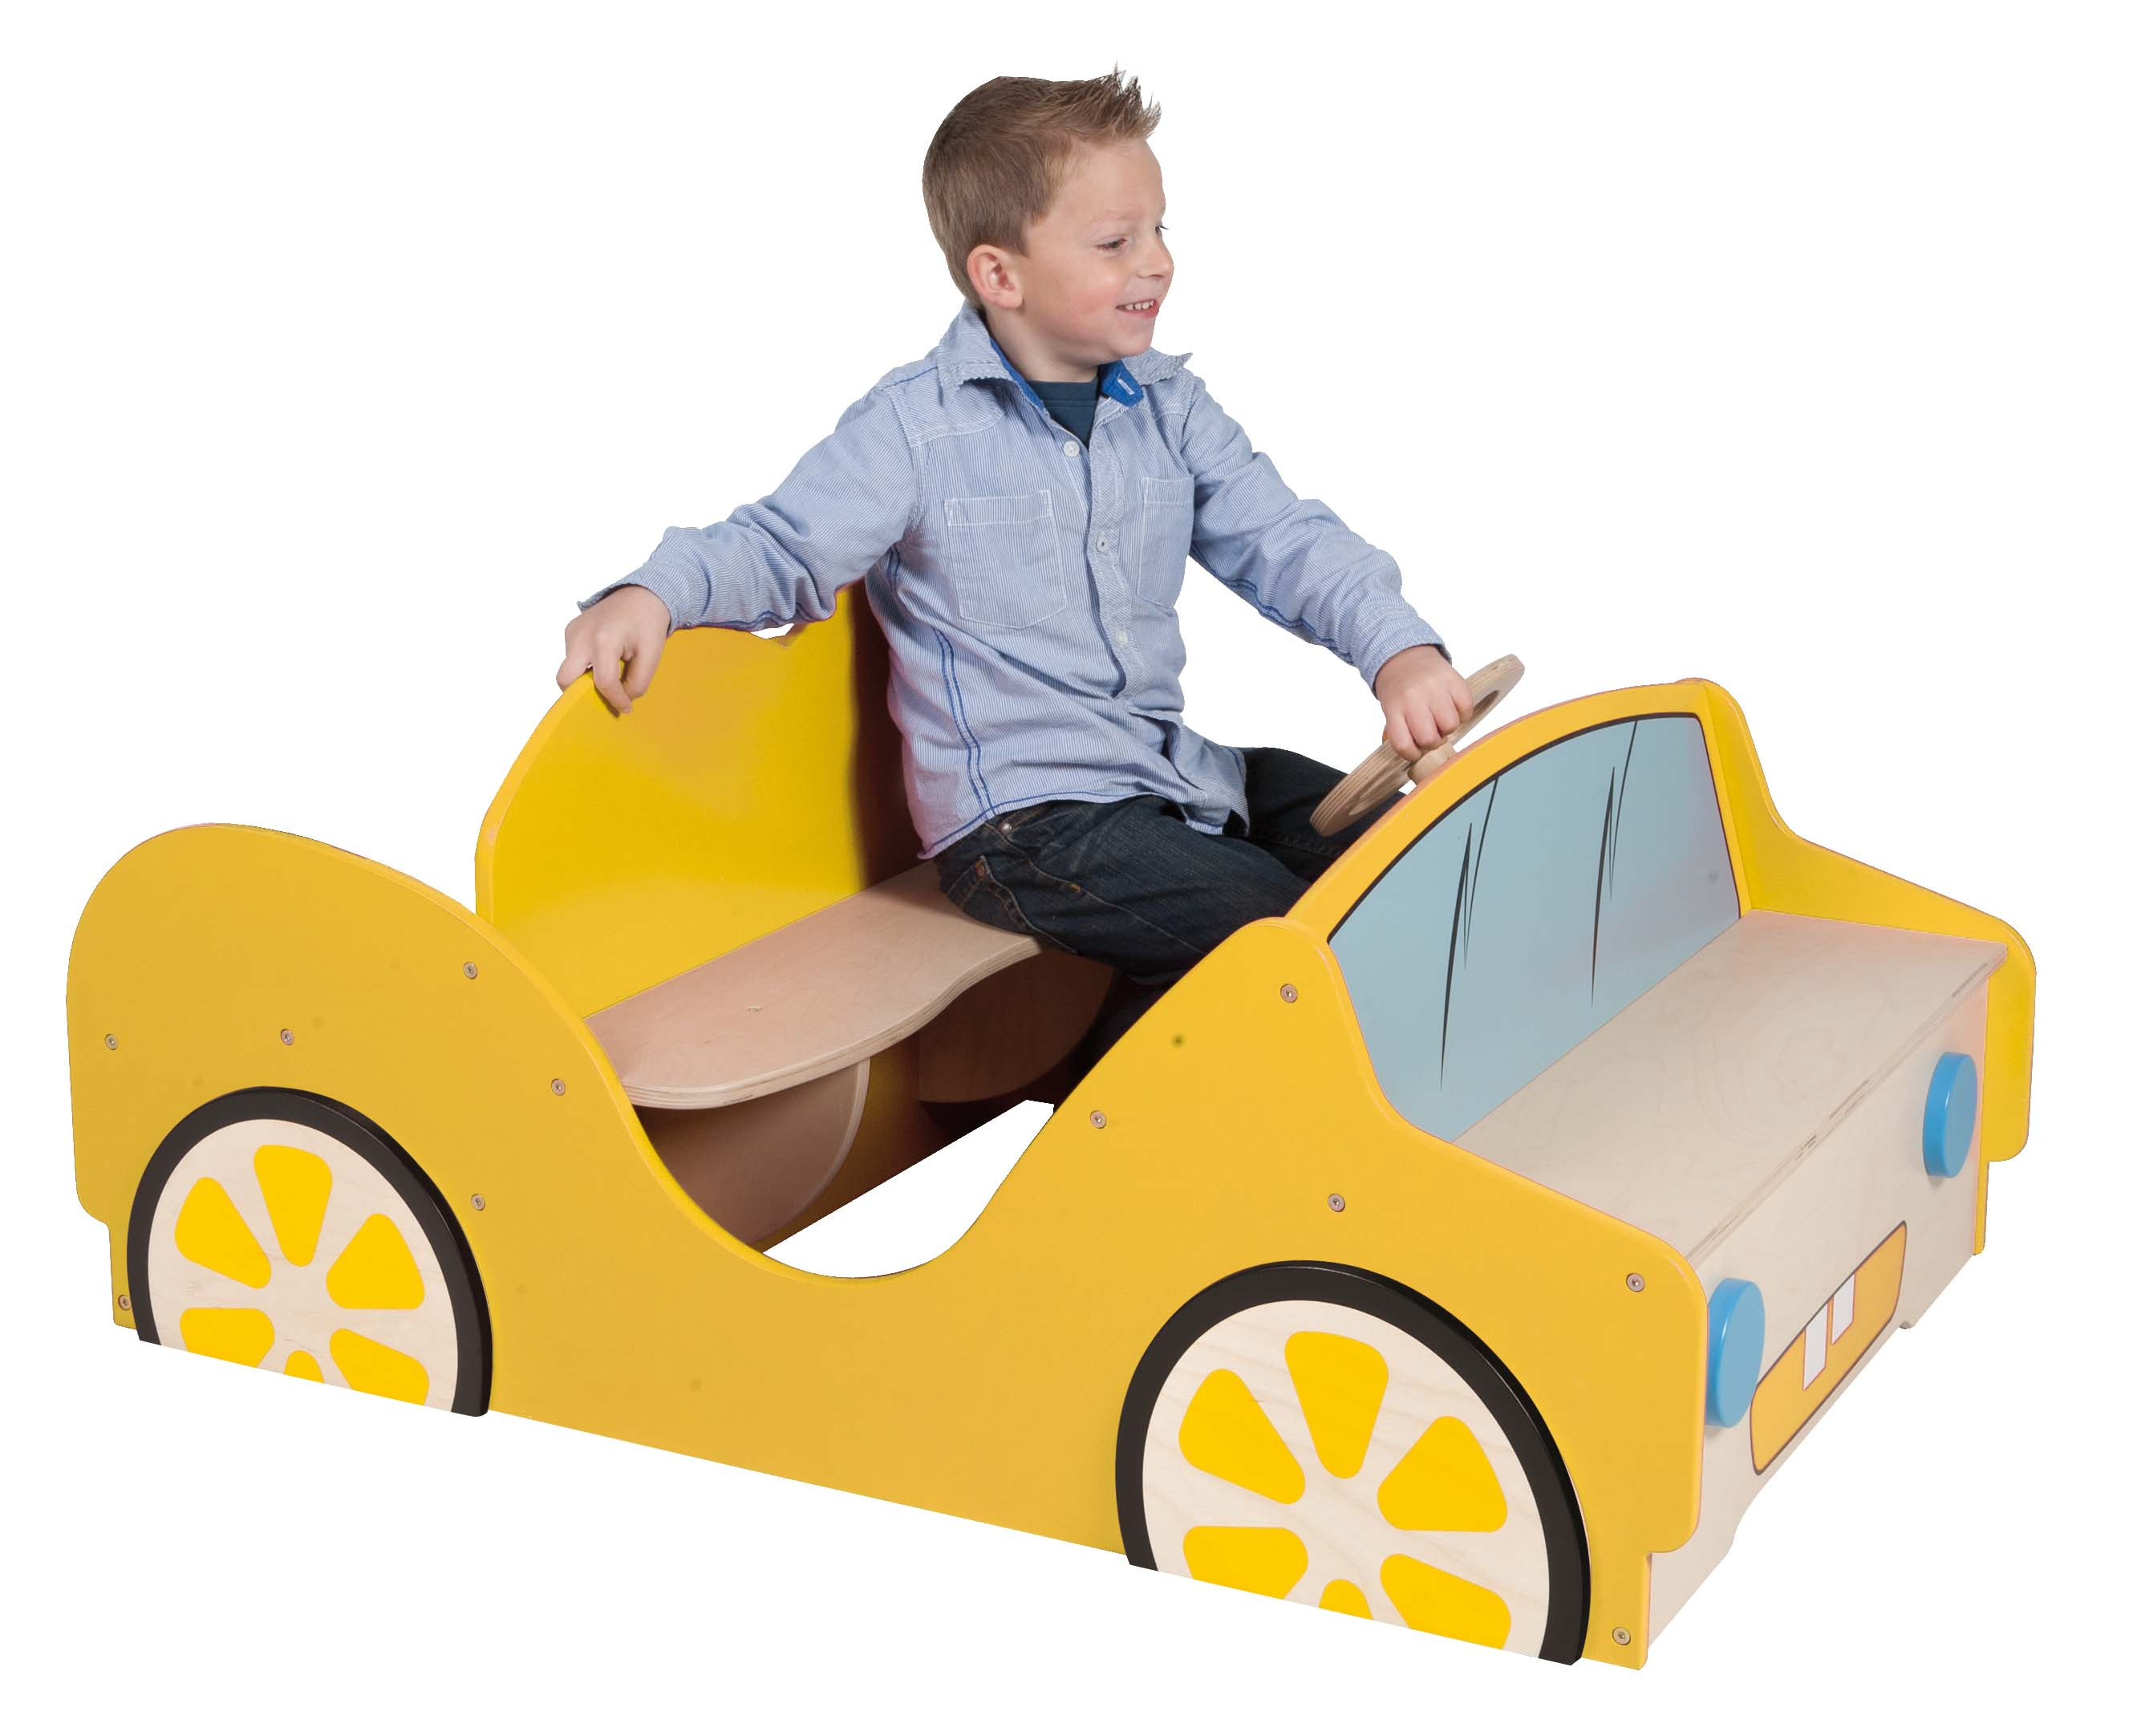 Wooden play car